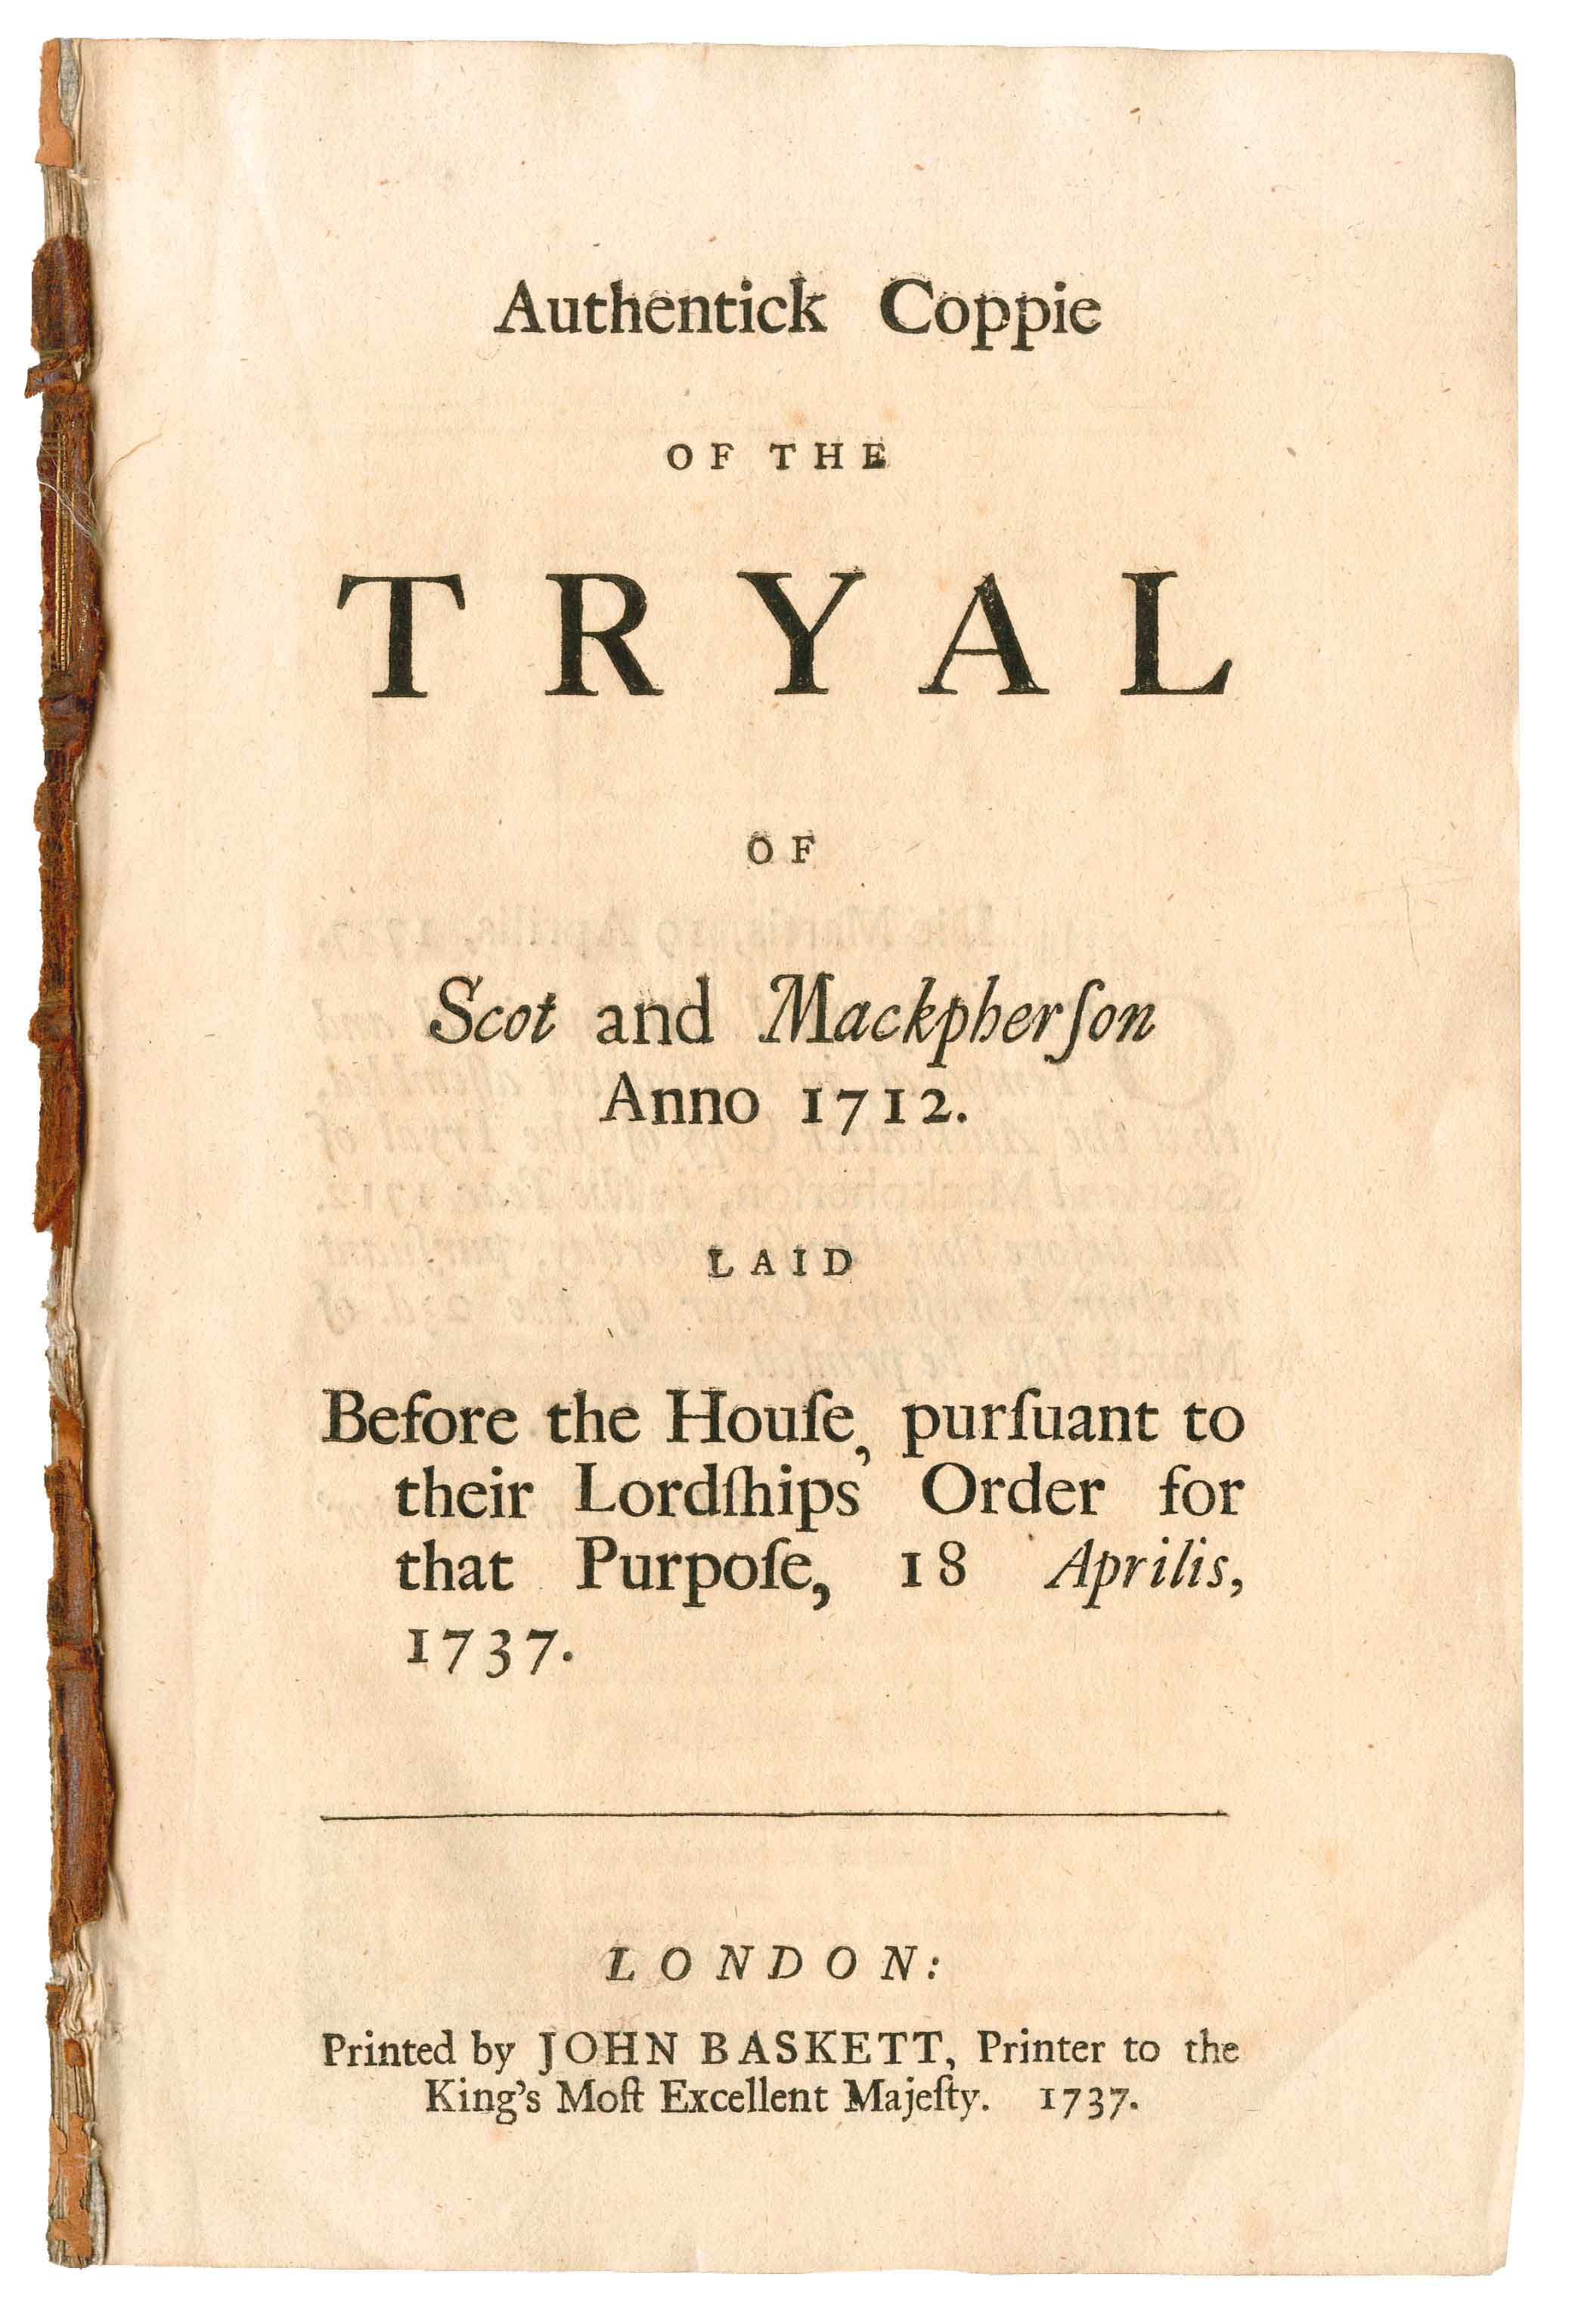 Authentick Coppie of the Tryal of Scot and Mackpherson Anno 1712. Laid before the House, pursuant to their Lordships' Order for that Purpose, 18 Aprilis, 1737.